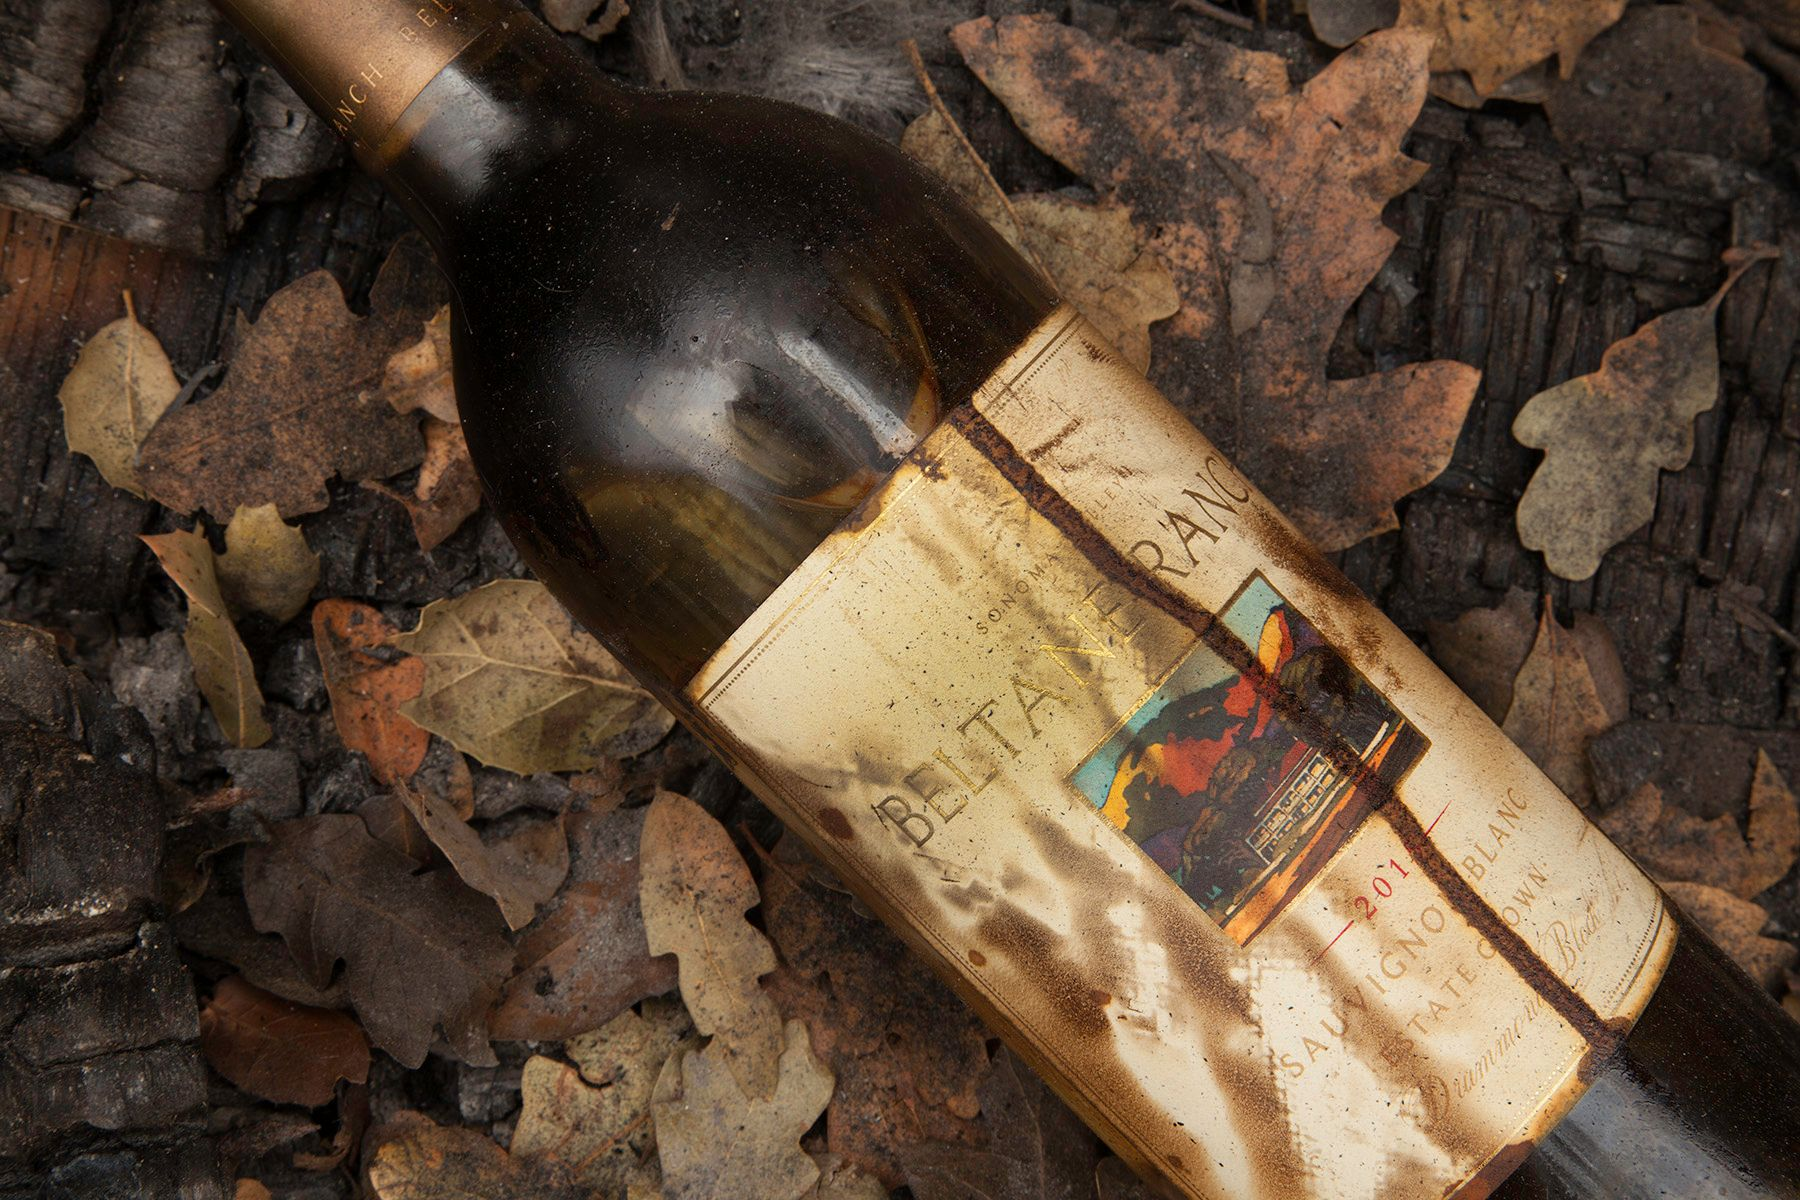 IMG_8673_burned bottle of wine.jpg